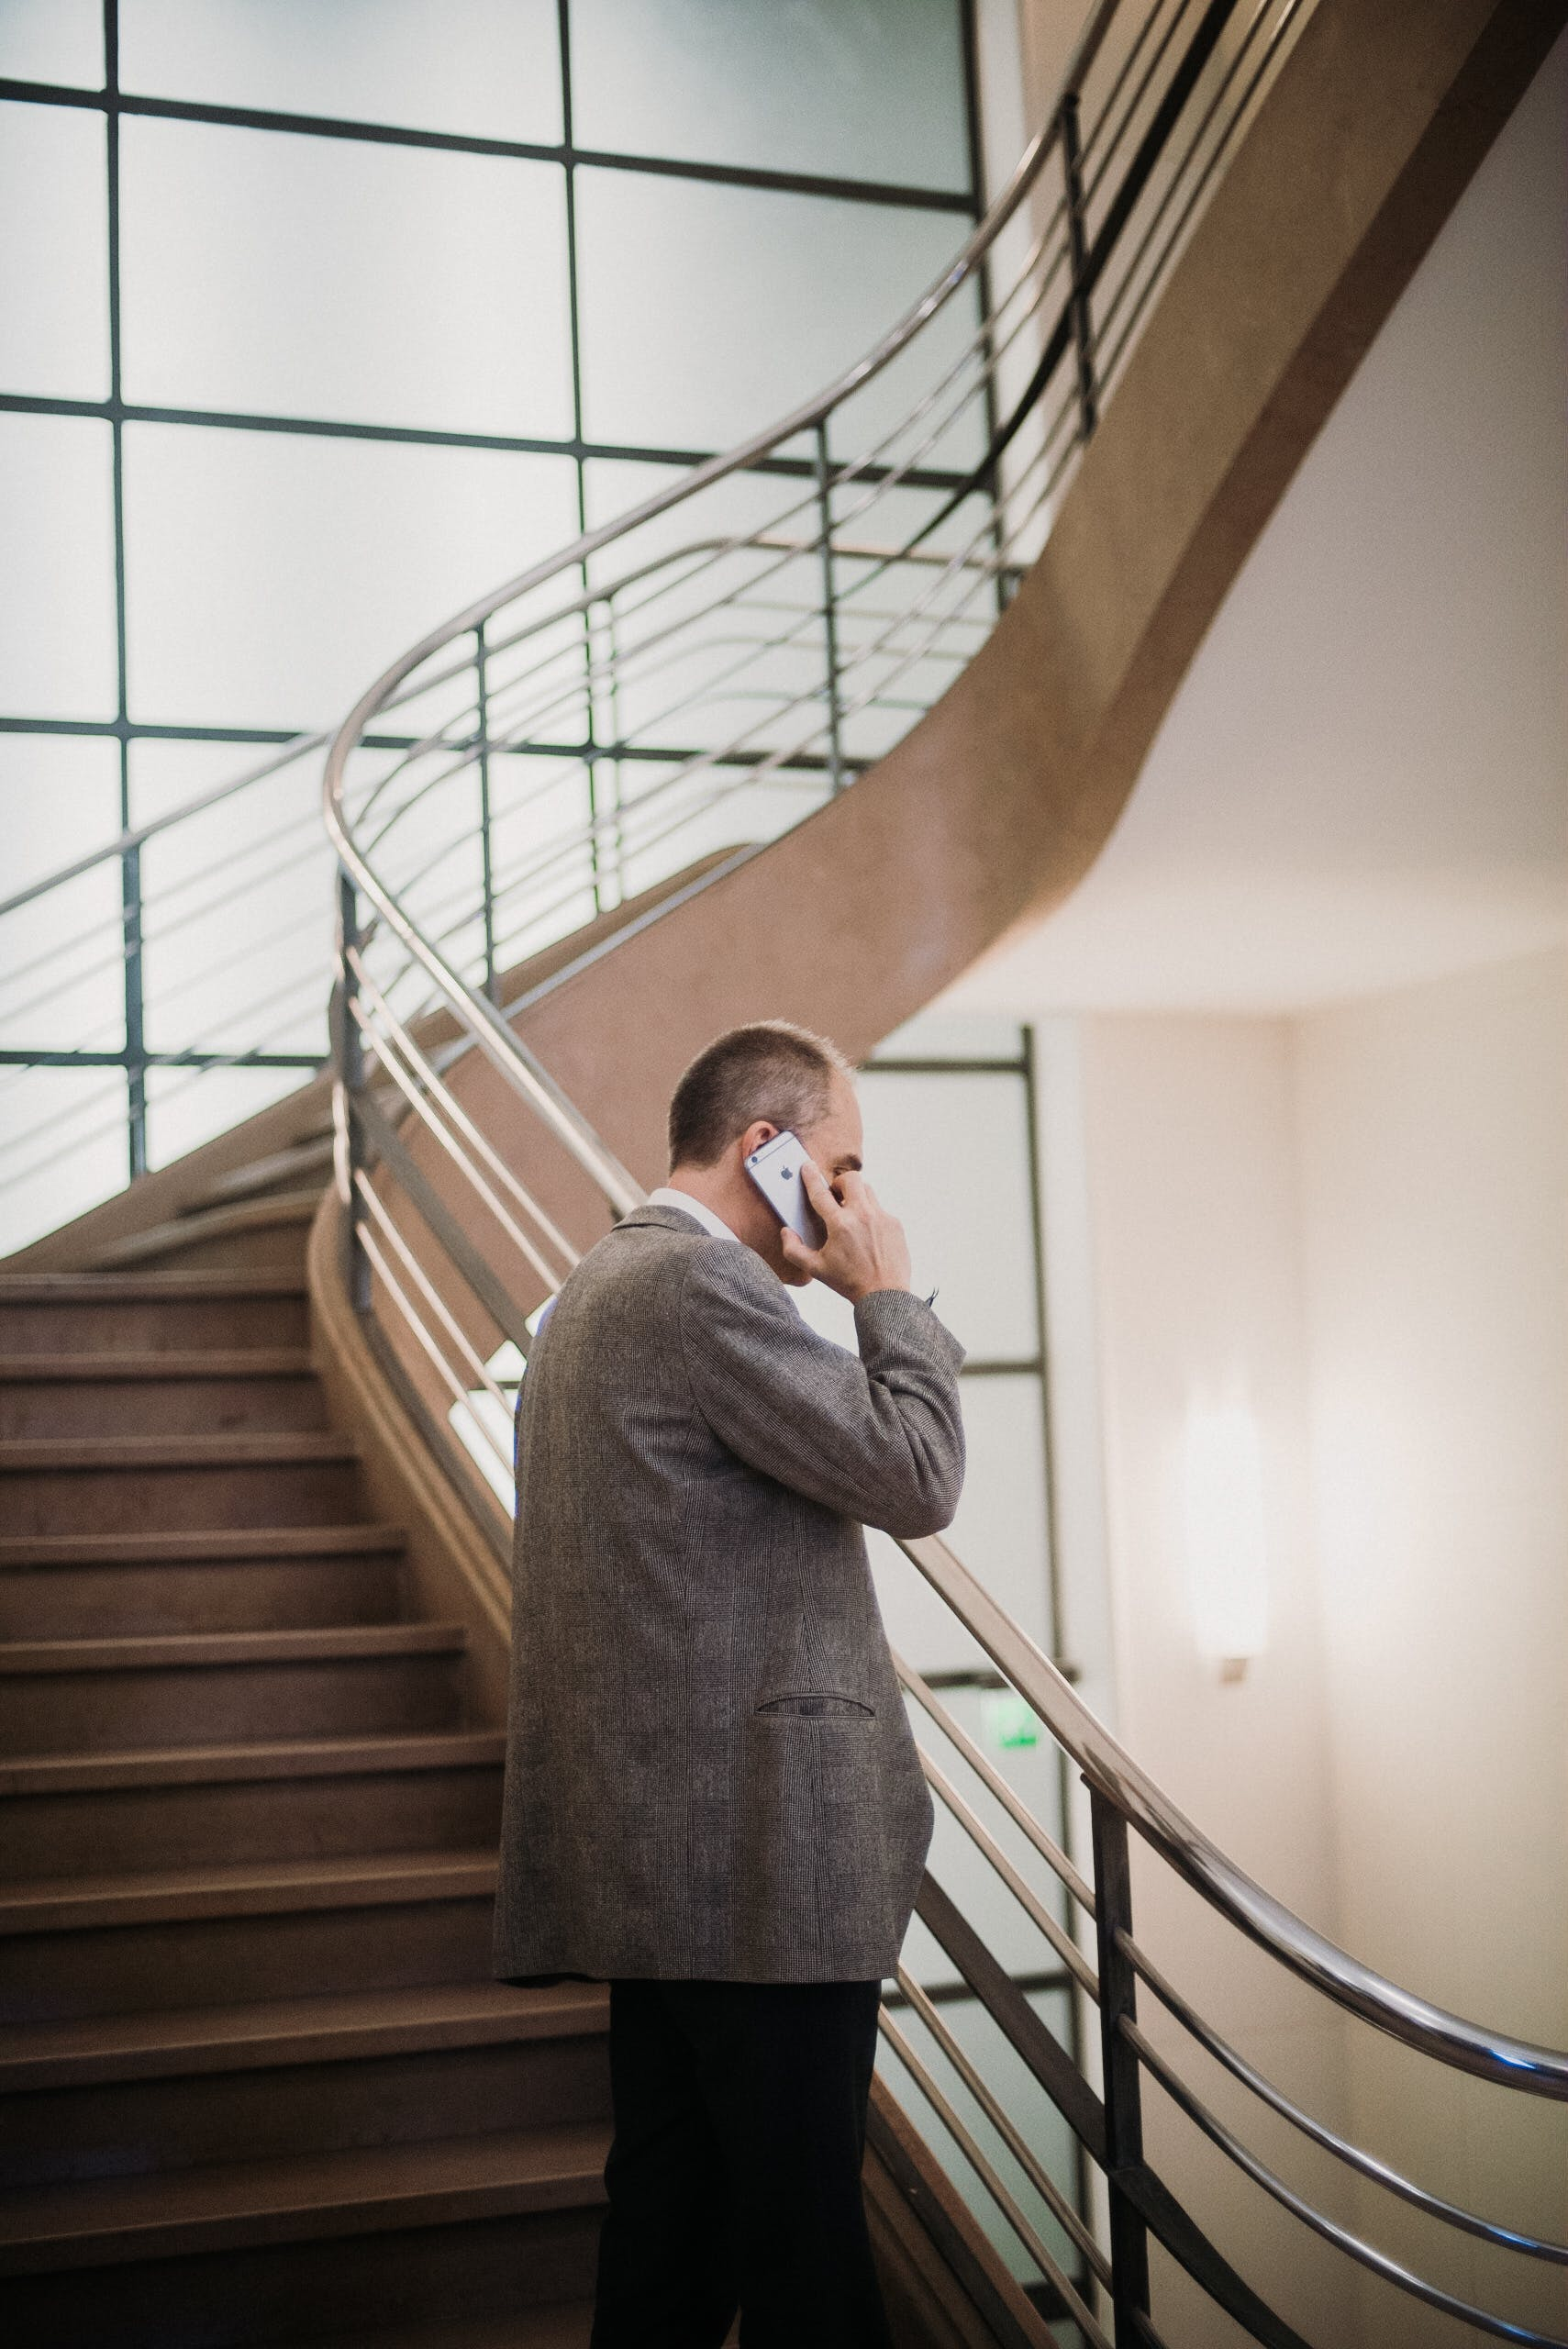 Man Listening to Smartphone While Standing on Staircase